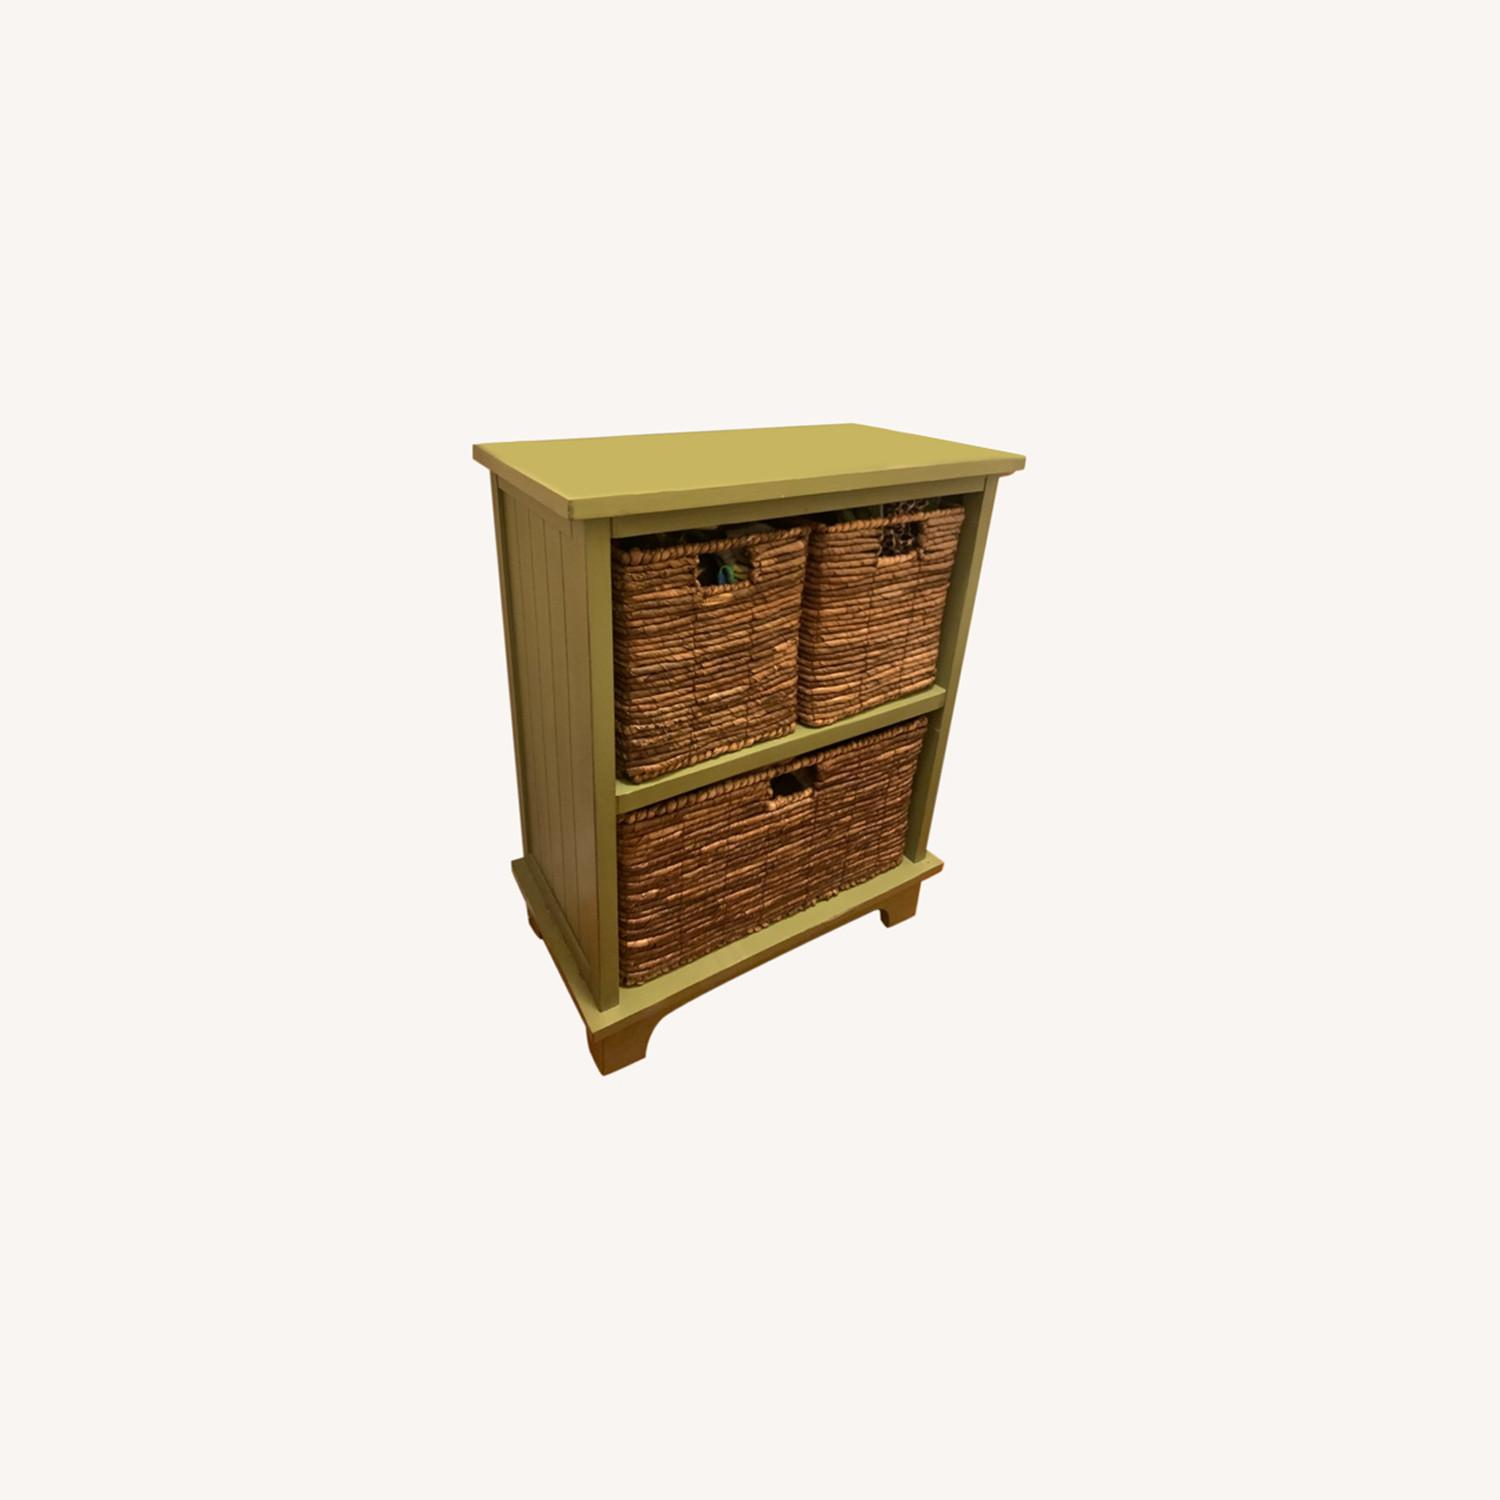 Small Green Wooden Storage Chest with 3 Baskets - image-0